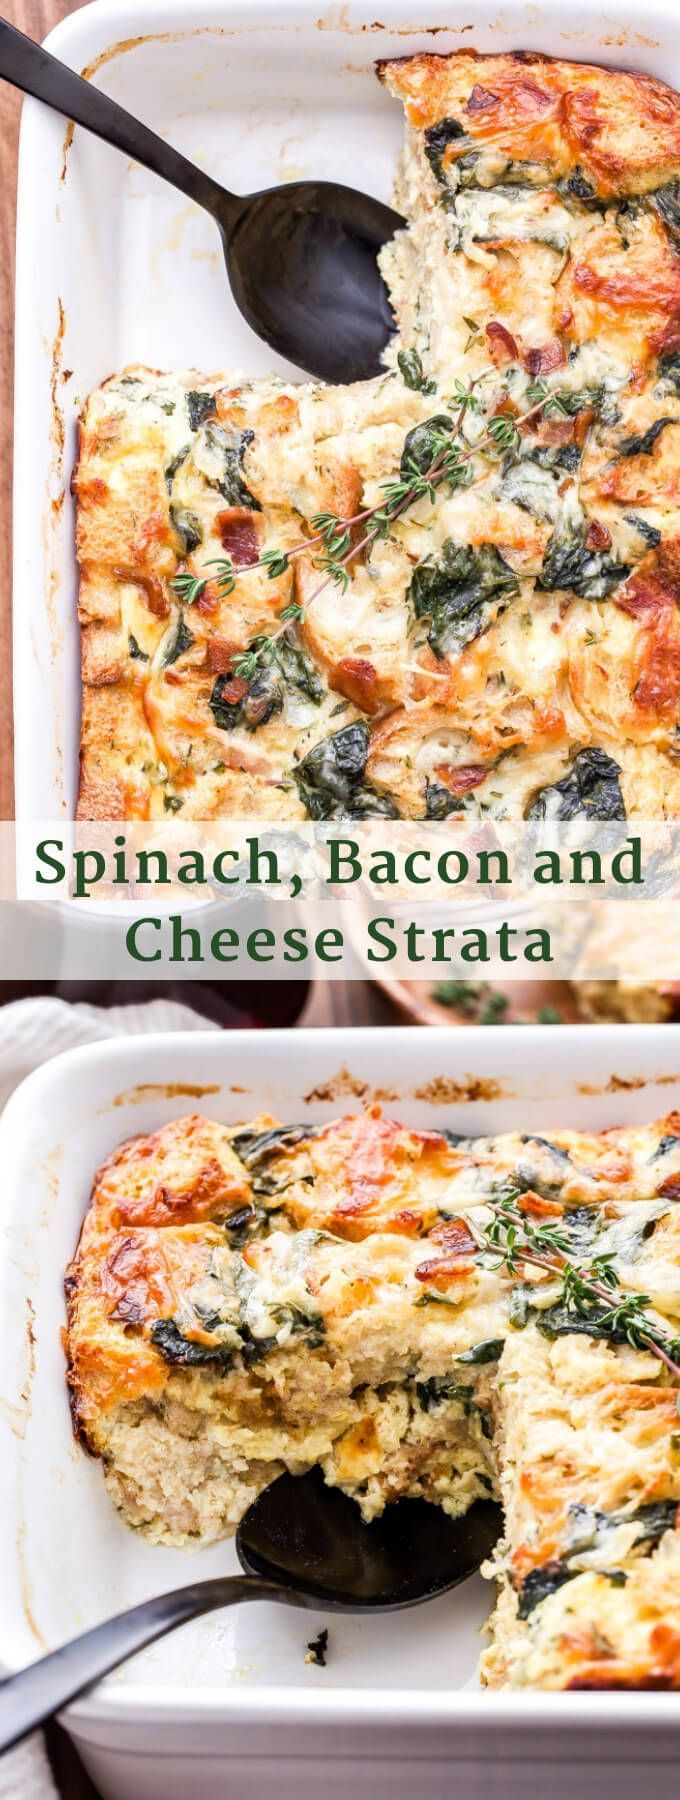 This Spinach, Bacon and Cheese Strata will be a fantastic addition to your next holiday brunch or weekend breakfast! Make it the night before and bake it in the morning for a stress free, hearty egg dish everyone will enjoy! Spinach, Bacon and Cheese Strata will be a fantastic addition to your next holiday brunch or weekend breakfast! Make it the night before and bake it in the morning for a stress free, hearty egg dish everyone will enjoy!